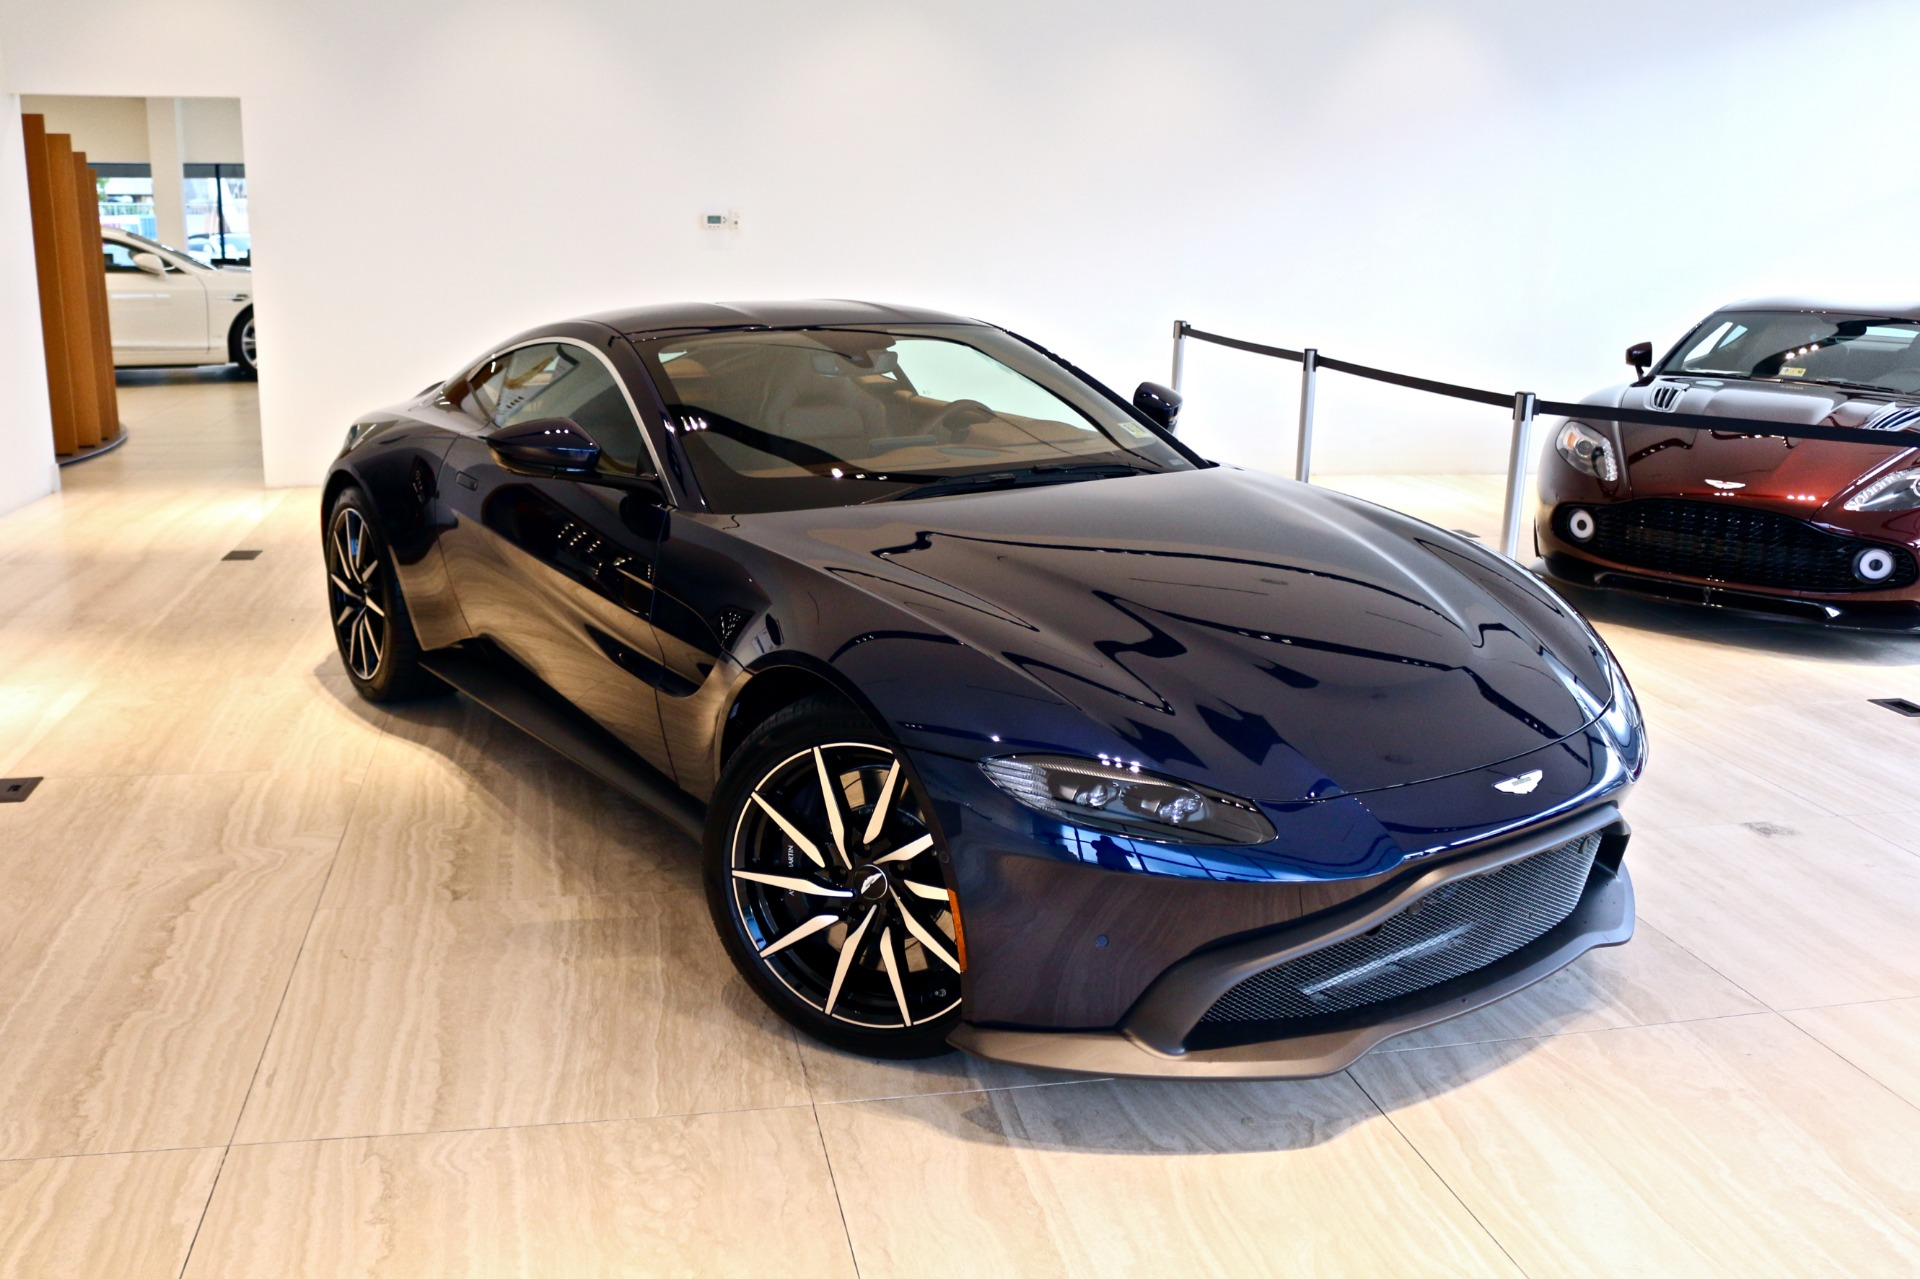 2019 aston martin vantage stock 9nn00297 for sale near vienna va va aston martin dealer for. Black Bedroom Furniture Sets. Home Design Ideas